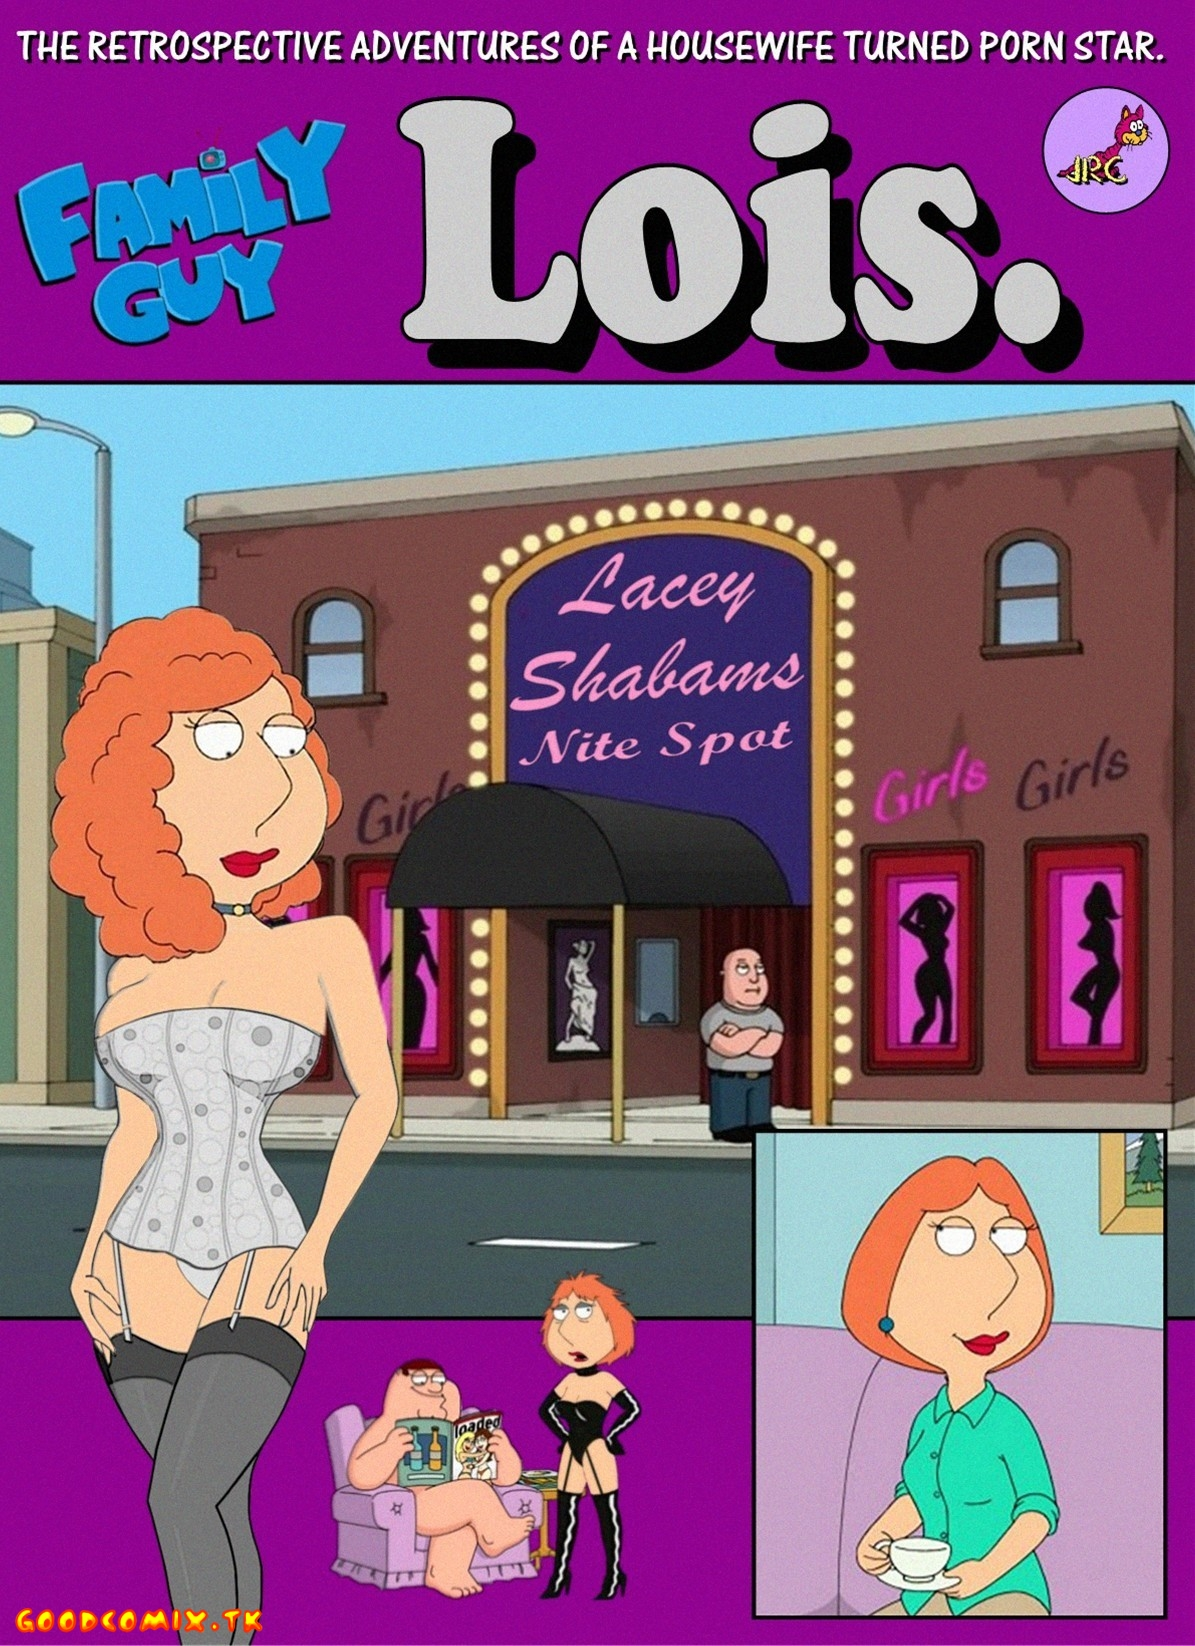 Goodcomix.tk Family Guy - [JRC] - The Retrospective Adventures Of A Housewife Turned Porno Star - Lois